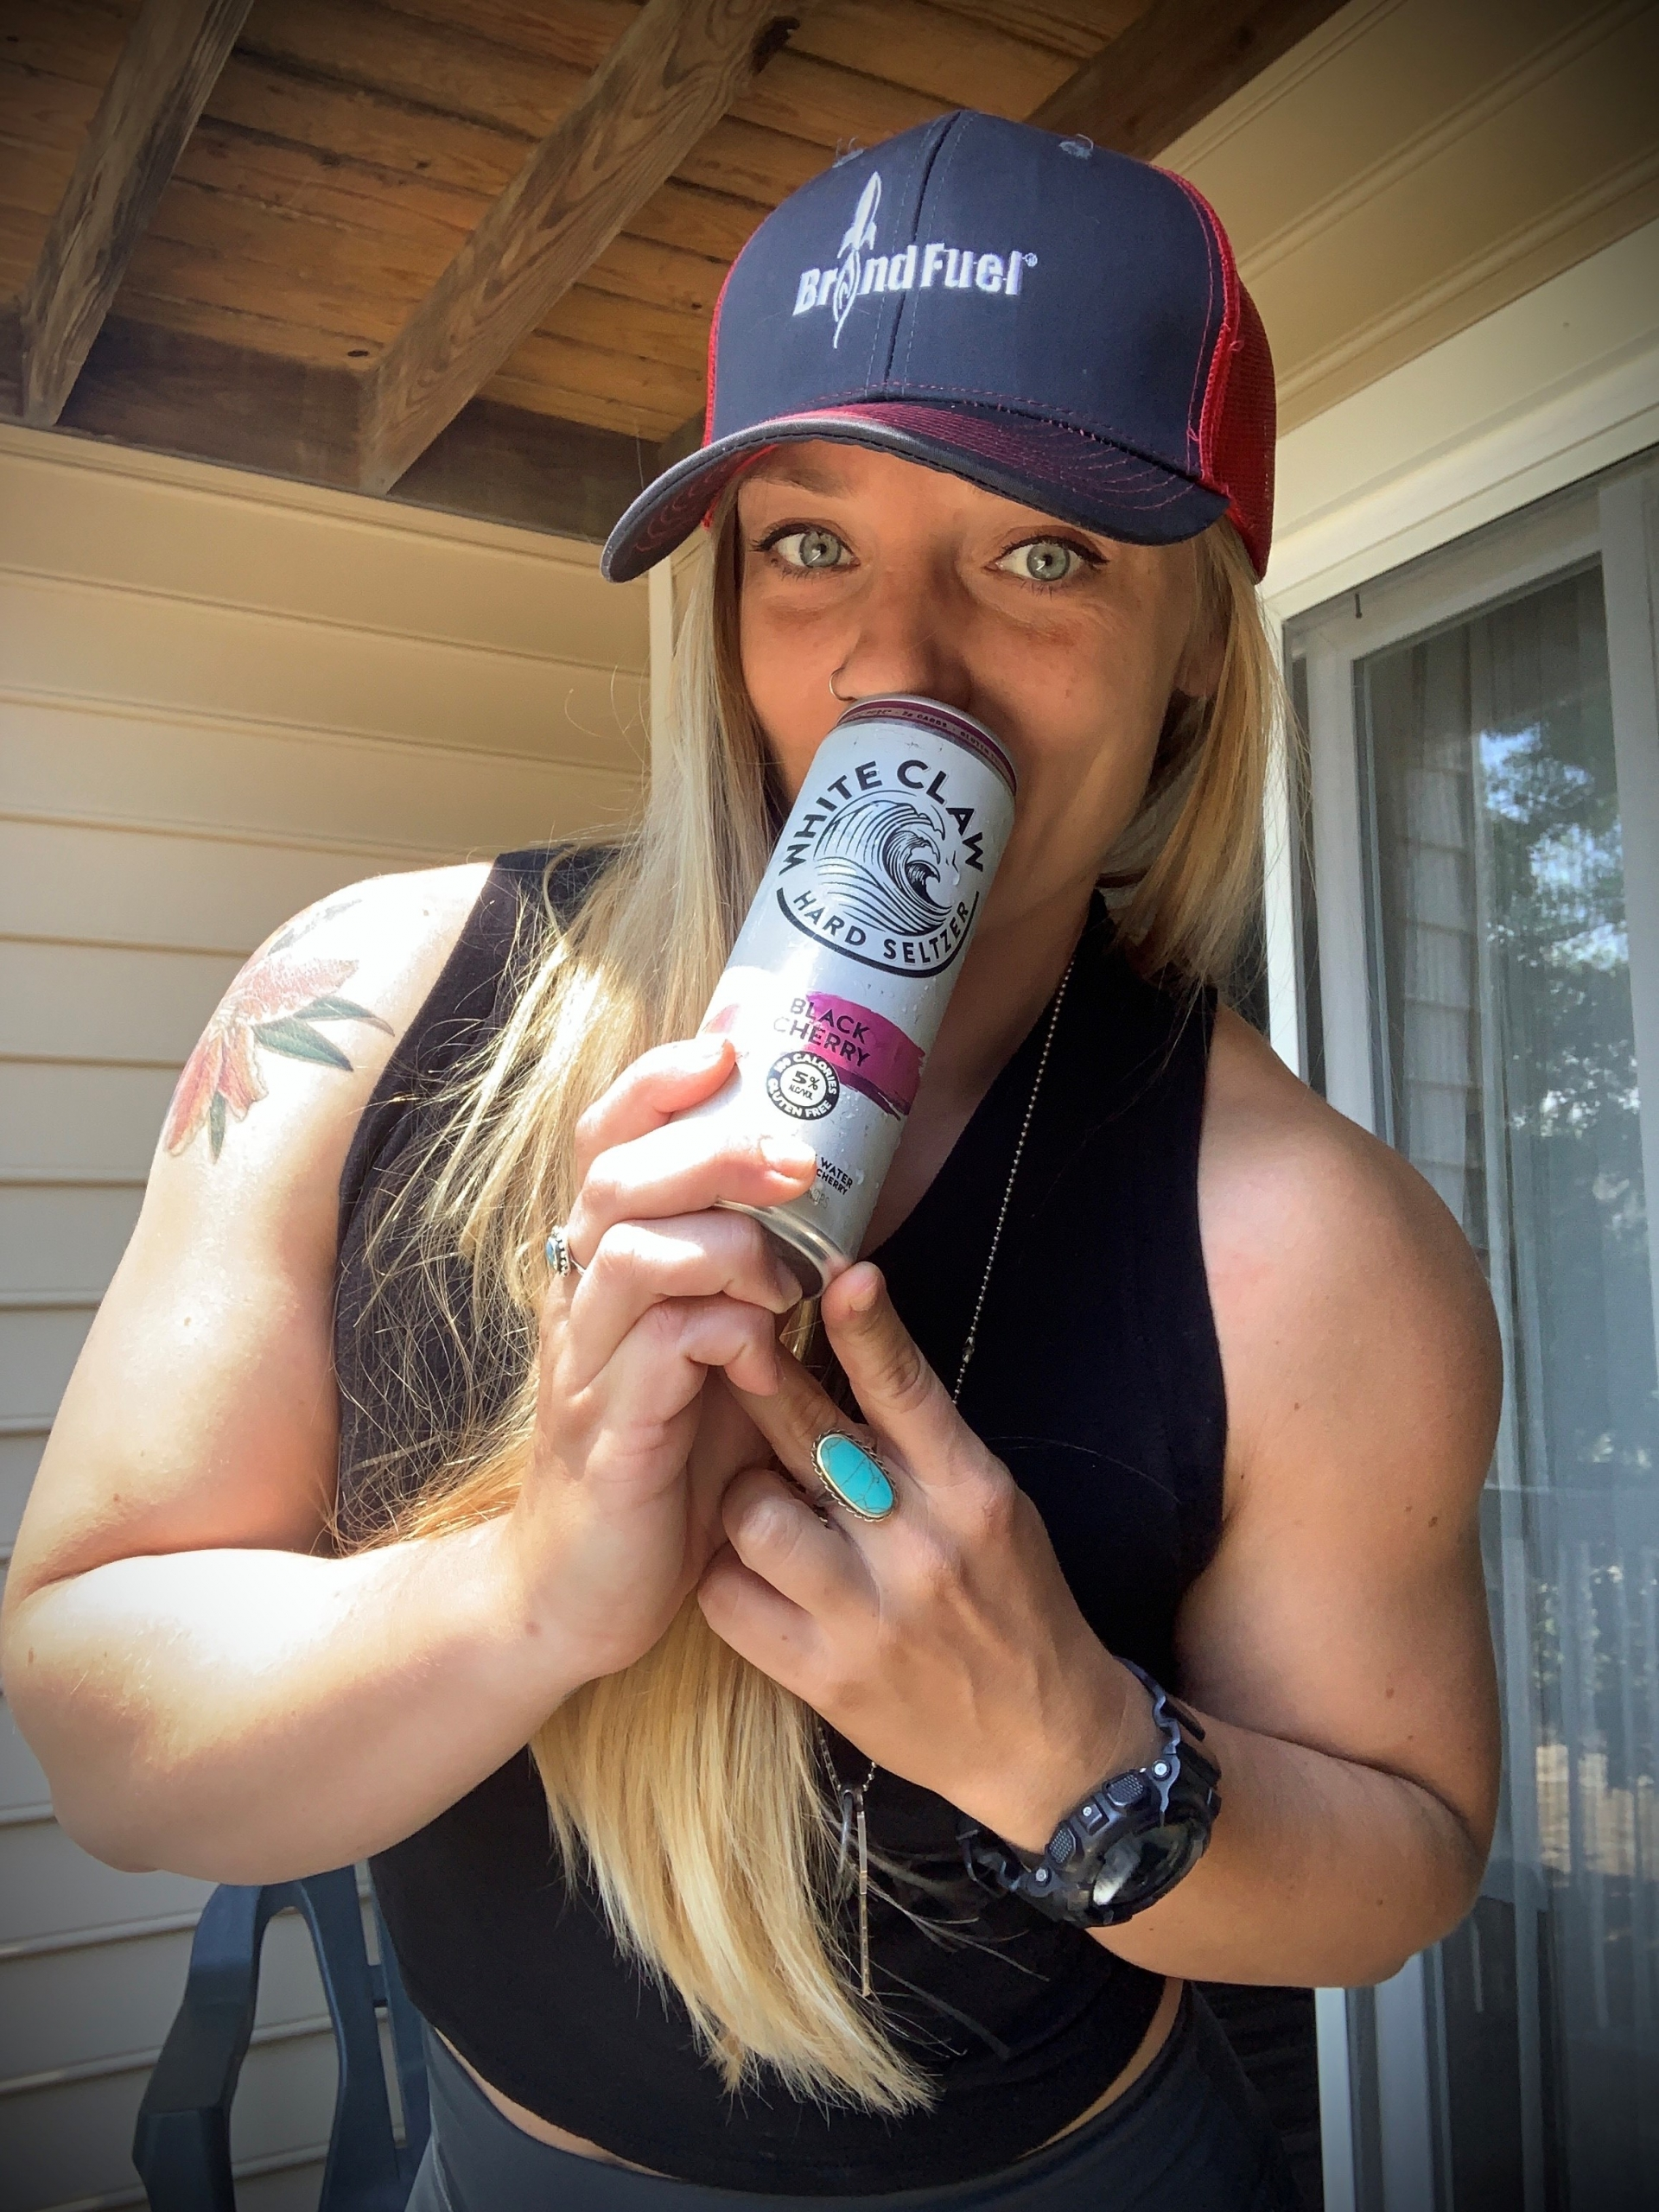 BrandFuel employee Annette Trayer holding a White Claw Hard Seltzer